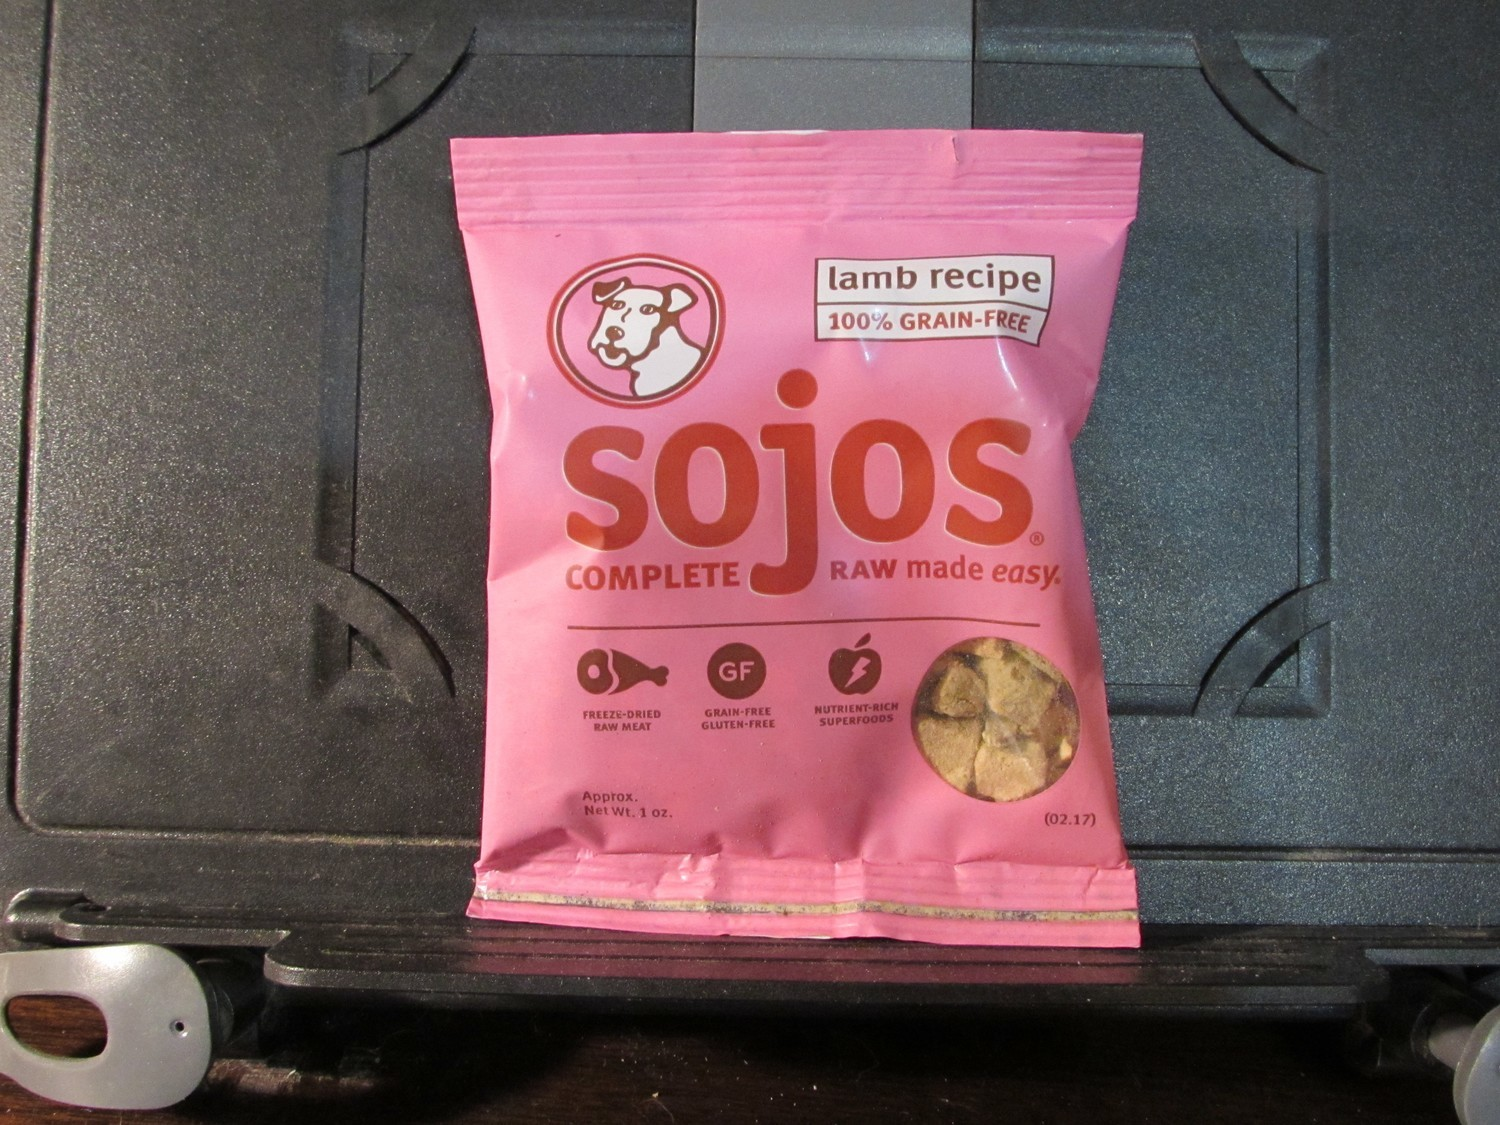 Sojos Complete 100% GF Lamb Recipe Trial Size (9/18) (A.P1)